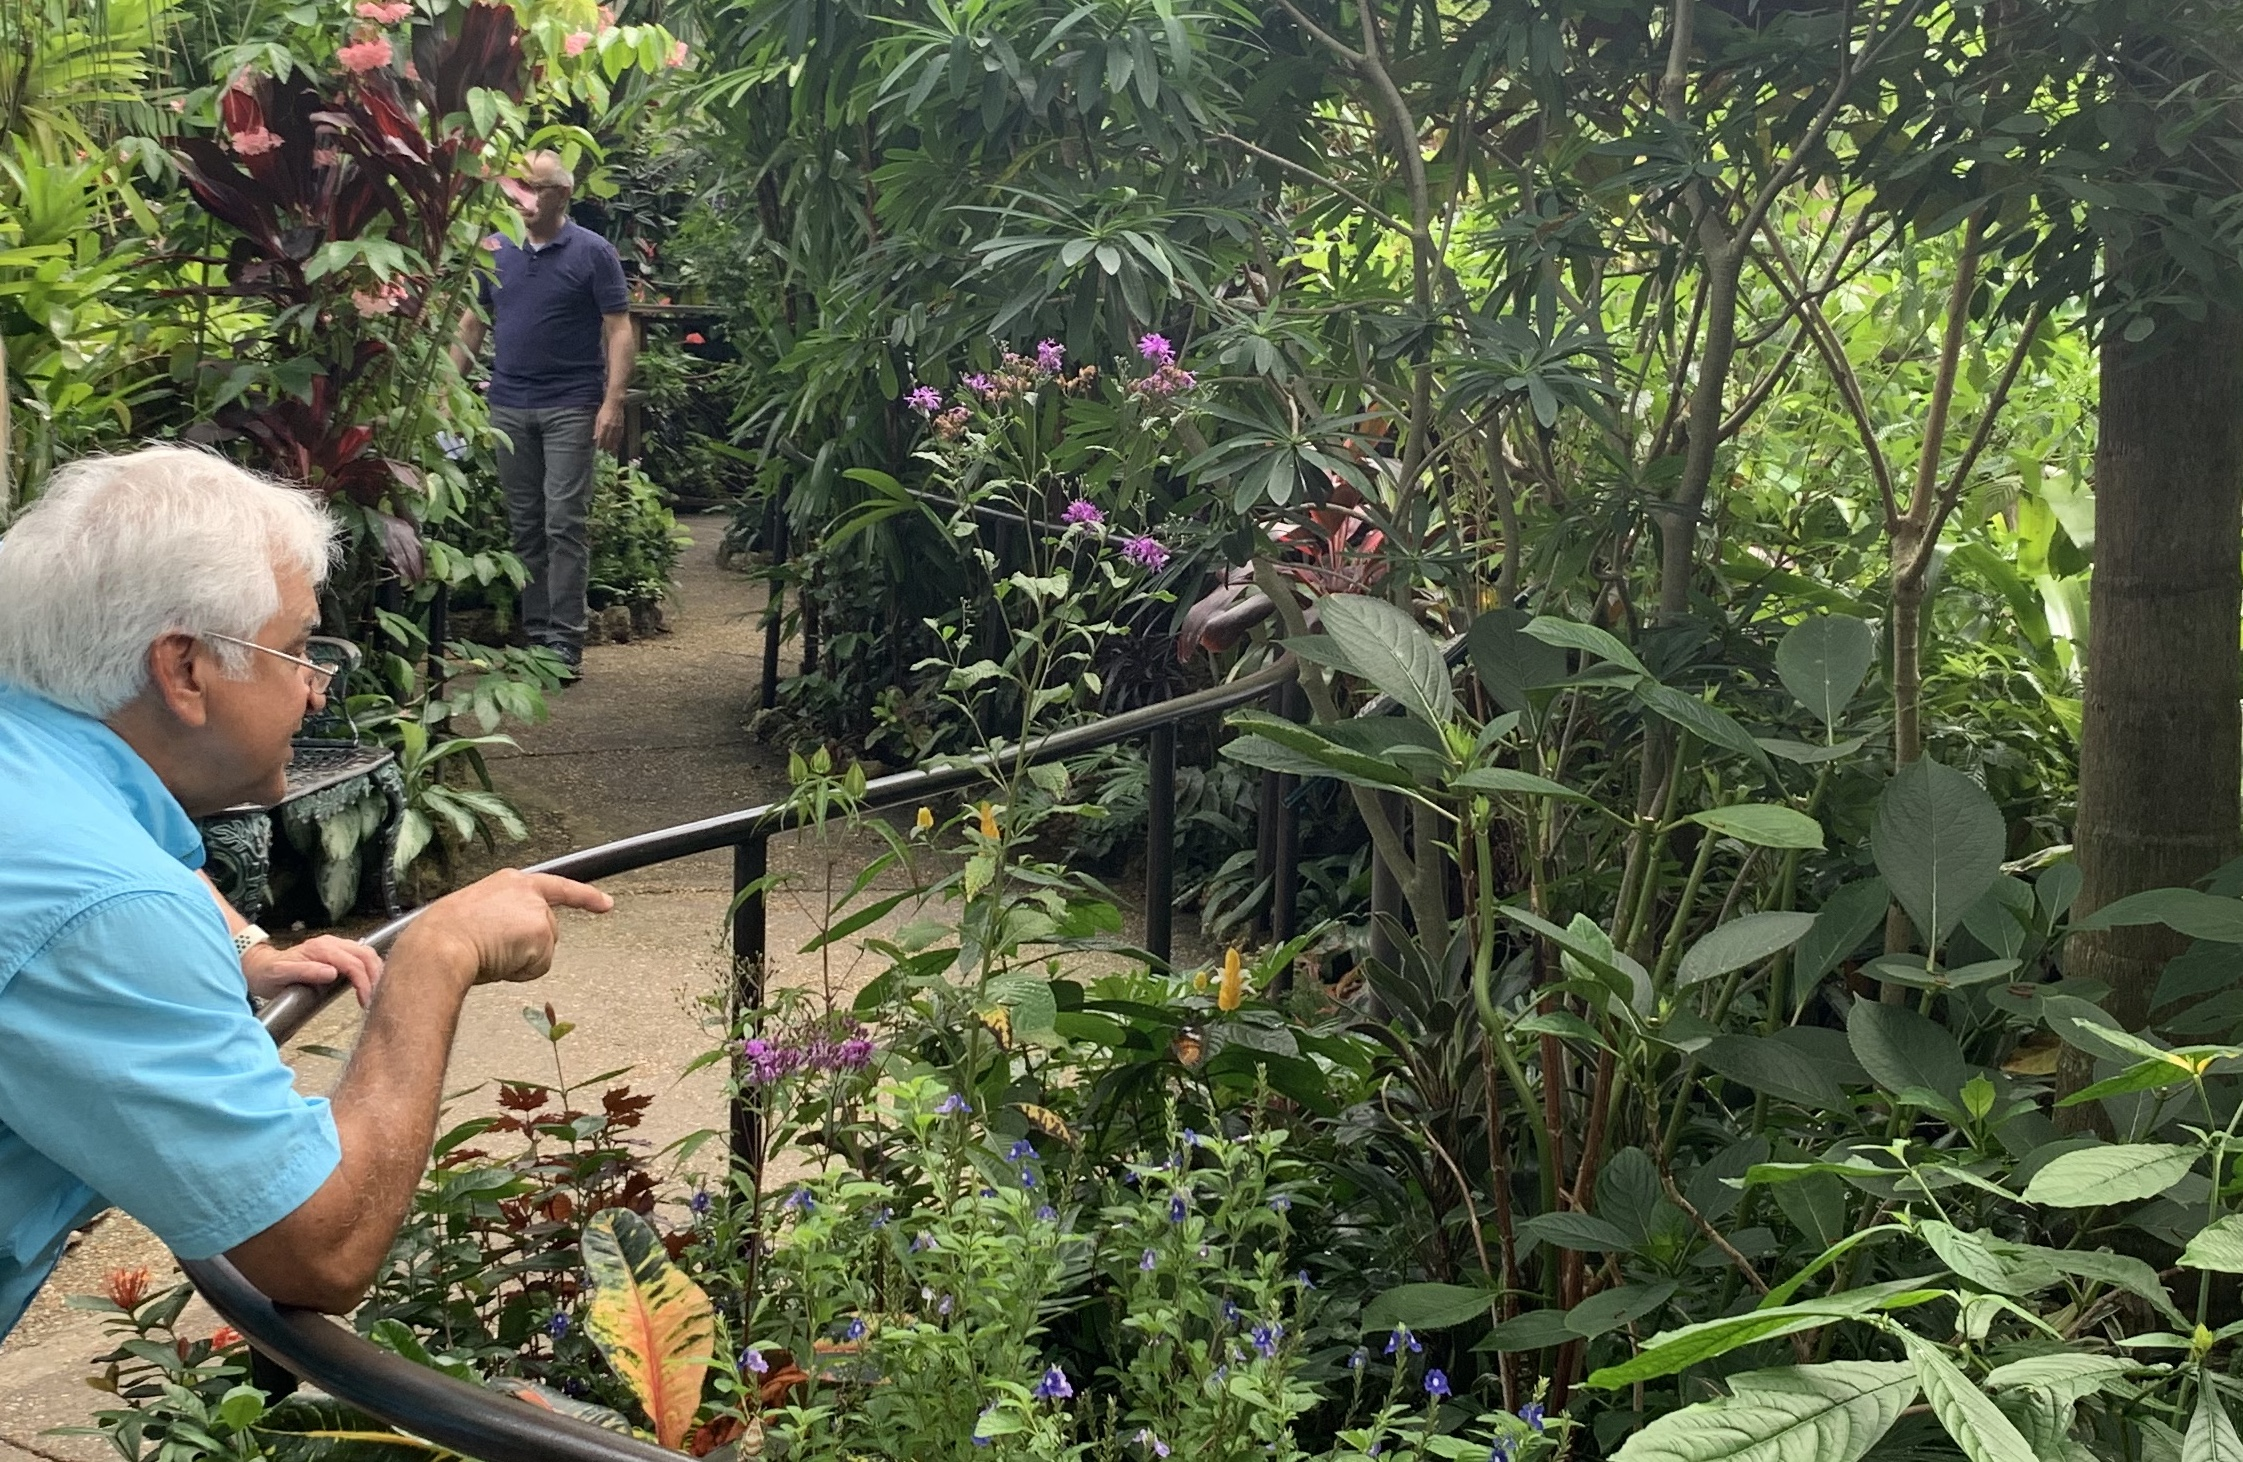 Planning A Visit To The Butterfly Rainforest In Gainesville Fl